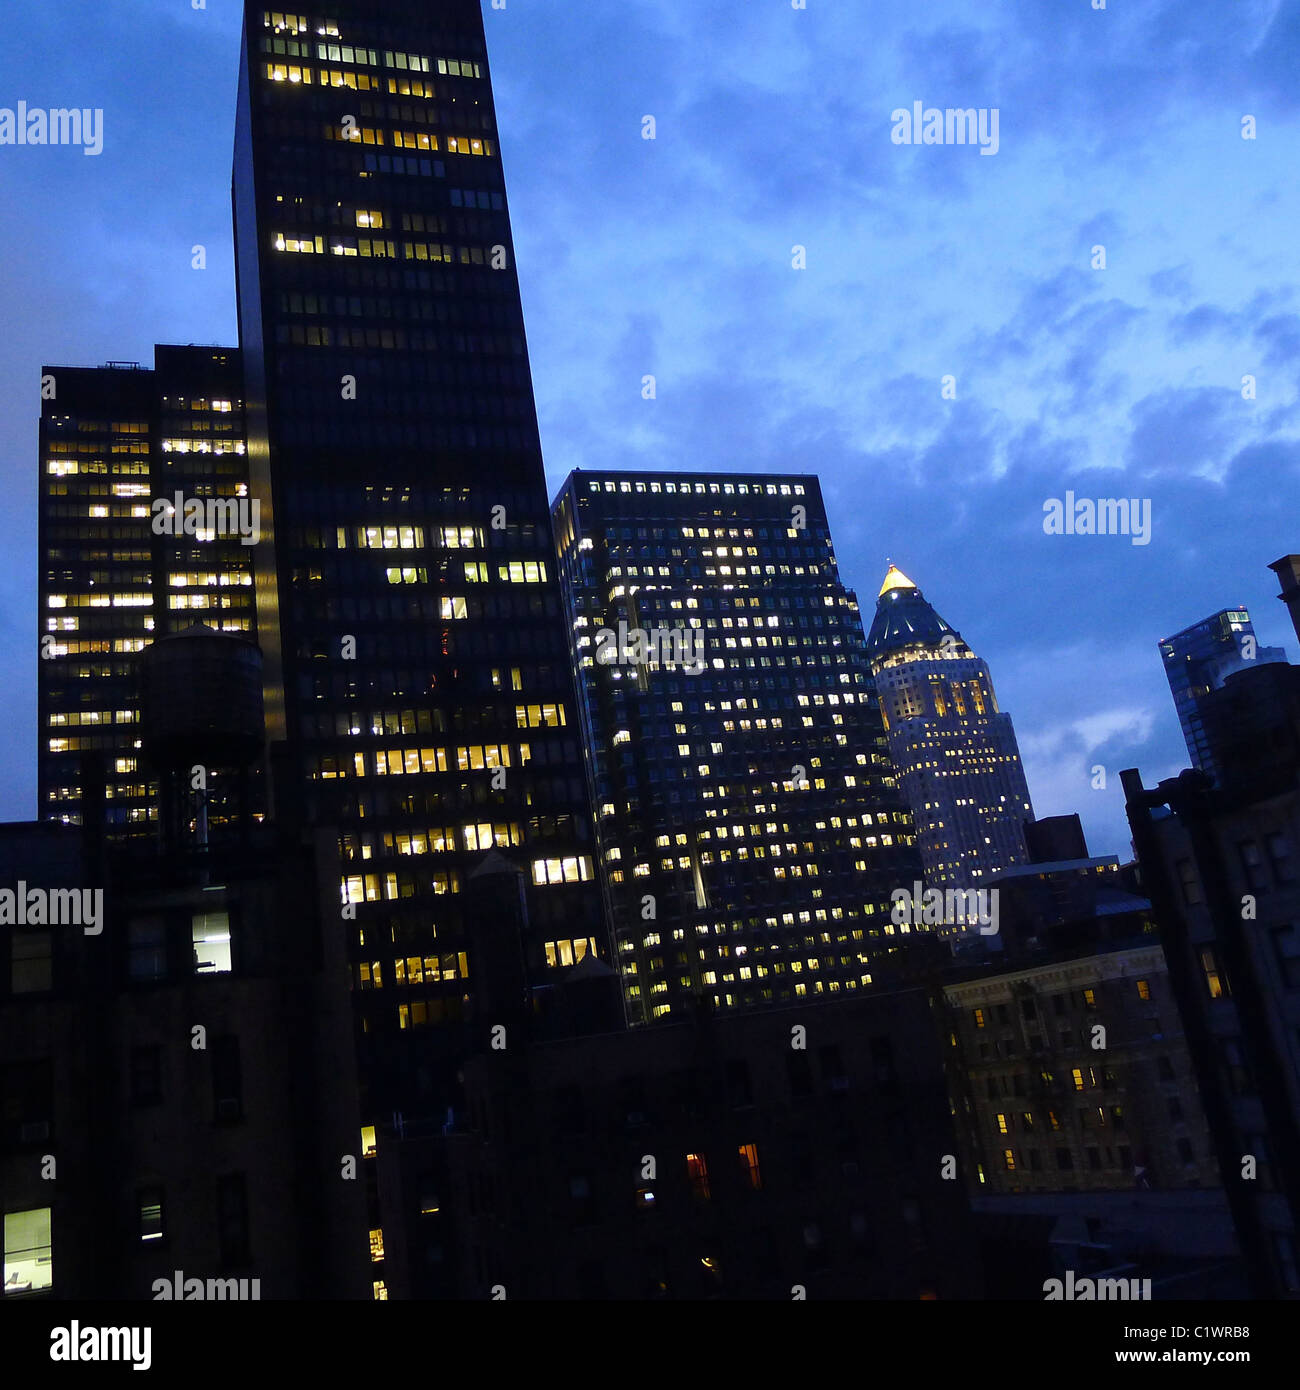 American Cities, New York City Architecture, USA. - Stock Image